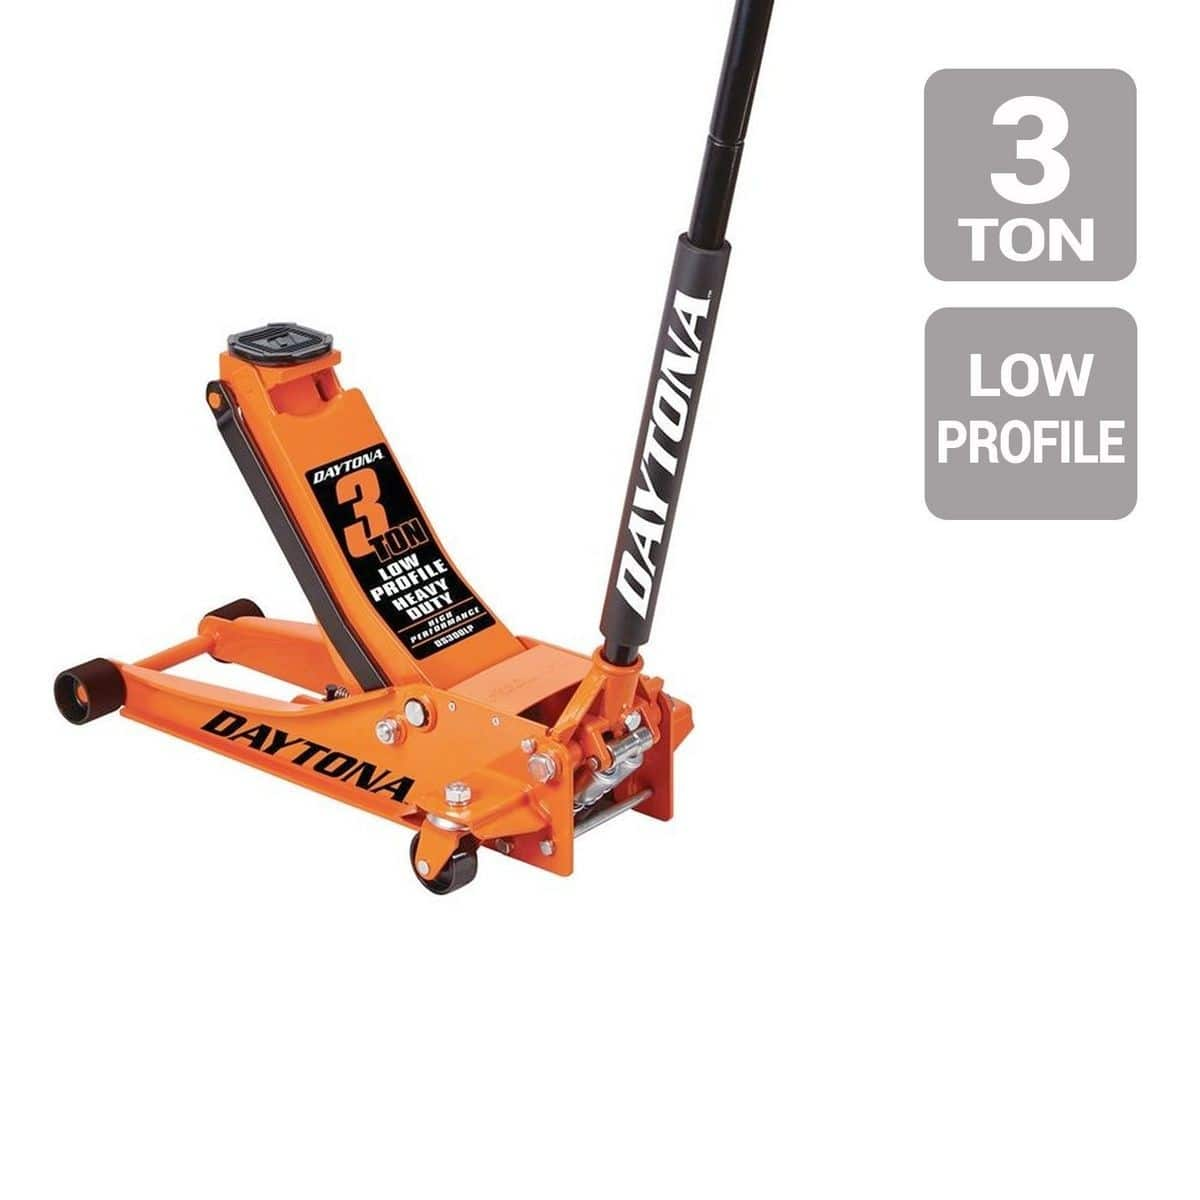 3 Ton Low Profile Daytona Floor Jack $119.99